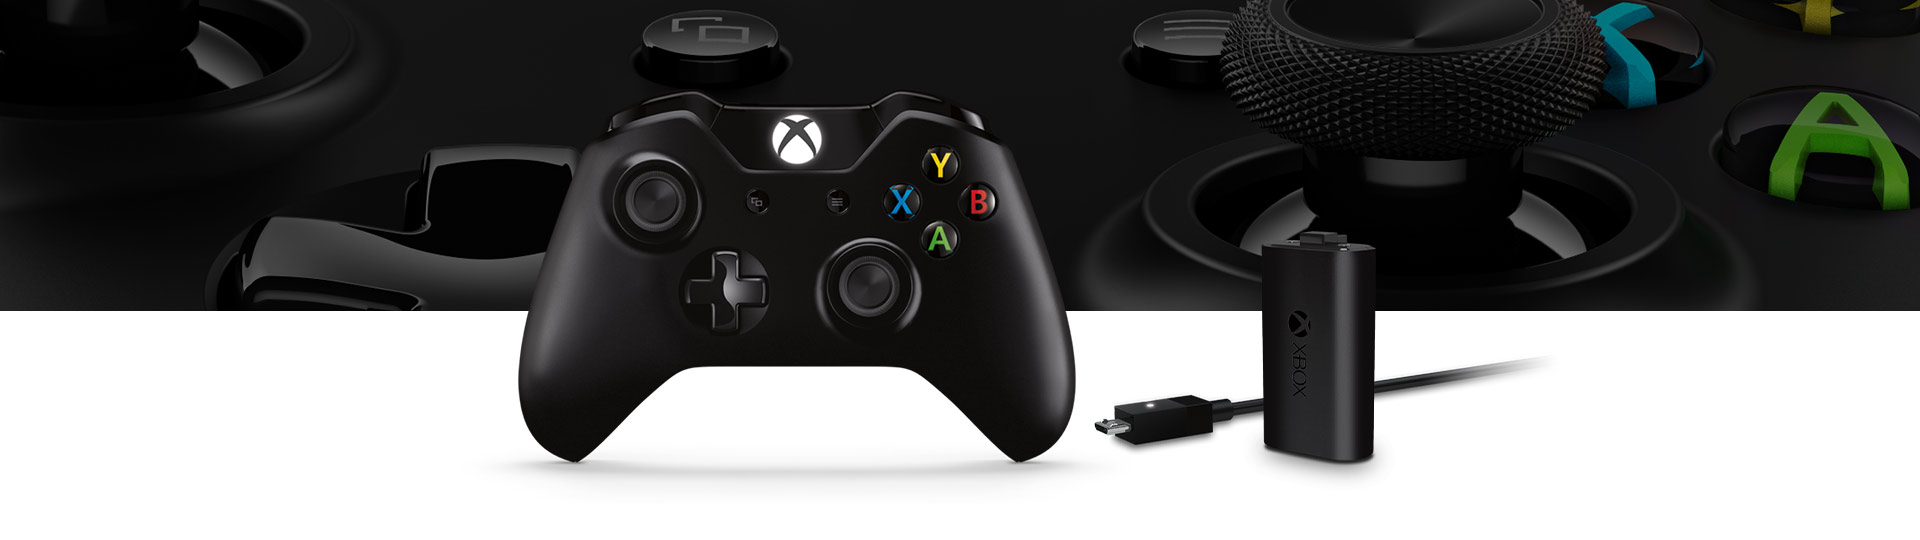 Controller Wireless per Xbox One con Kit Play & Charge